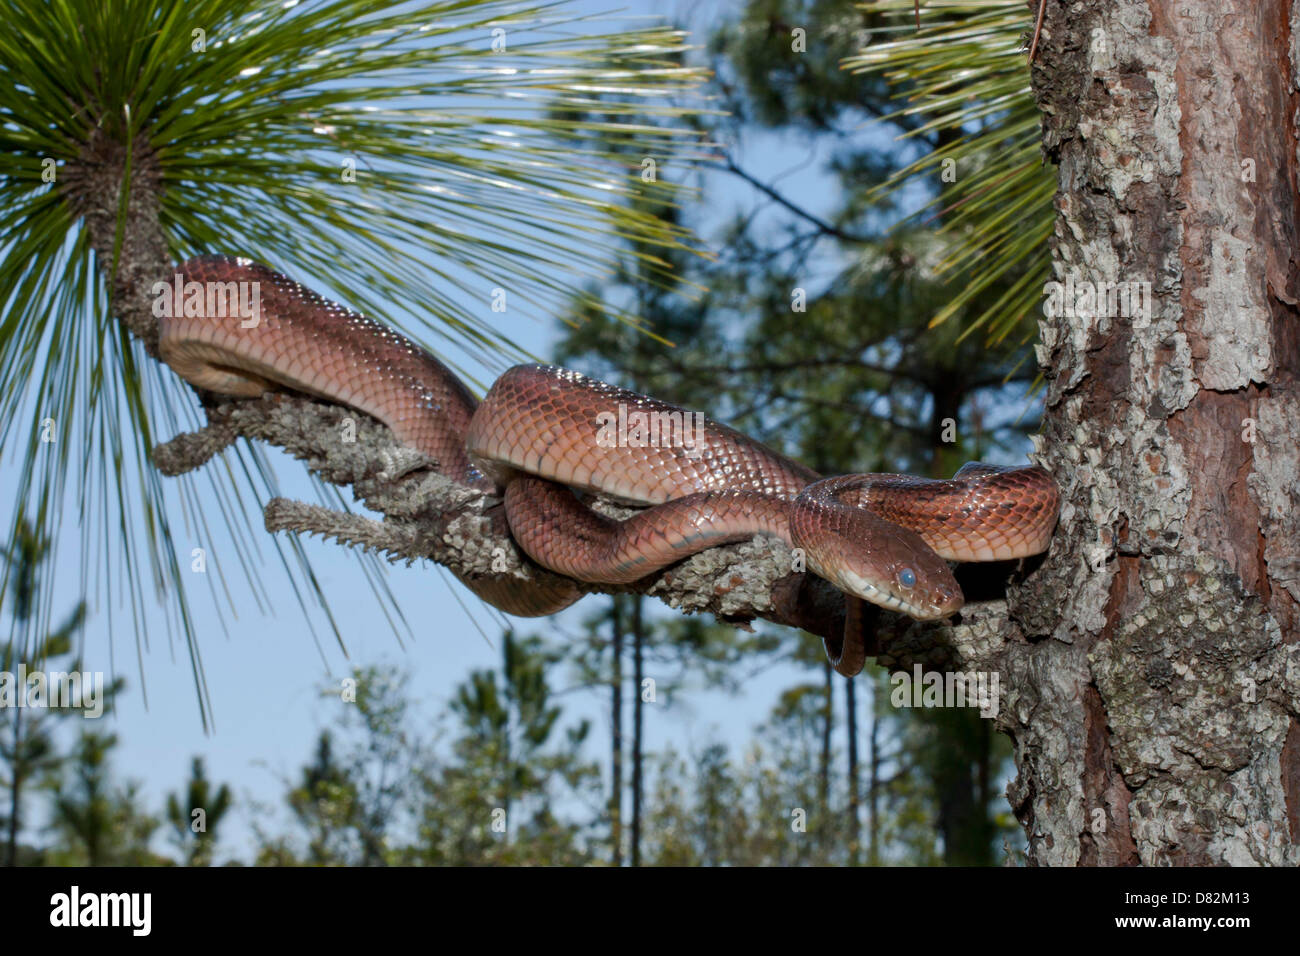 Corn snake  - Pantherophis guttatus Stock Photo